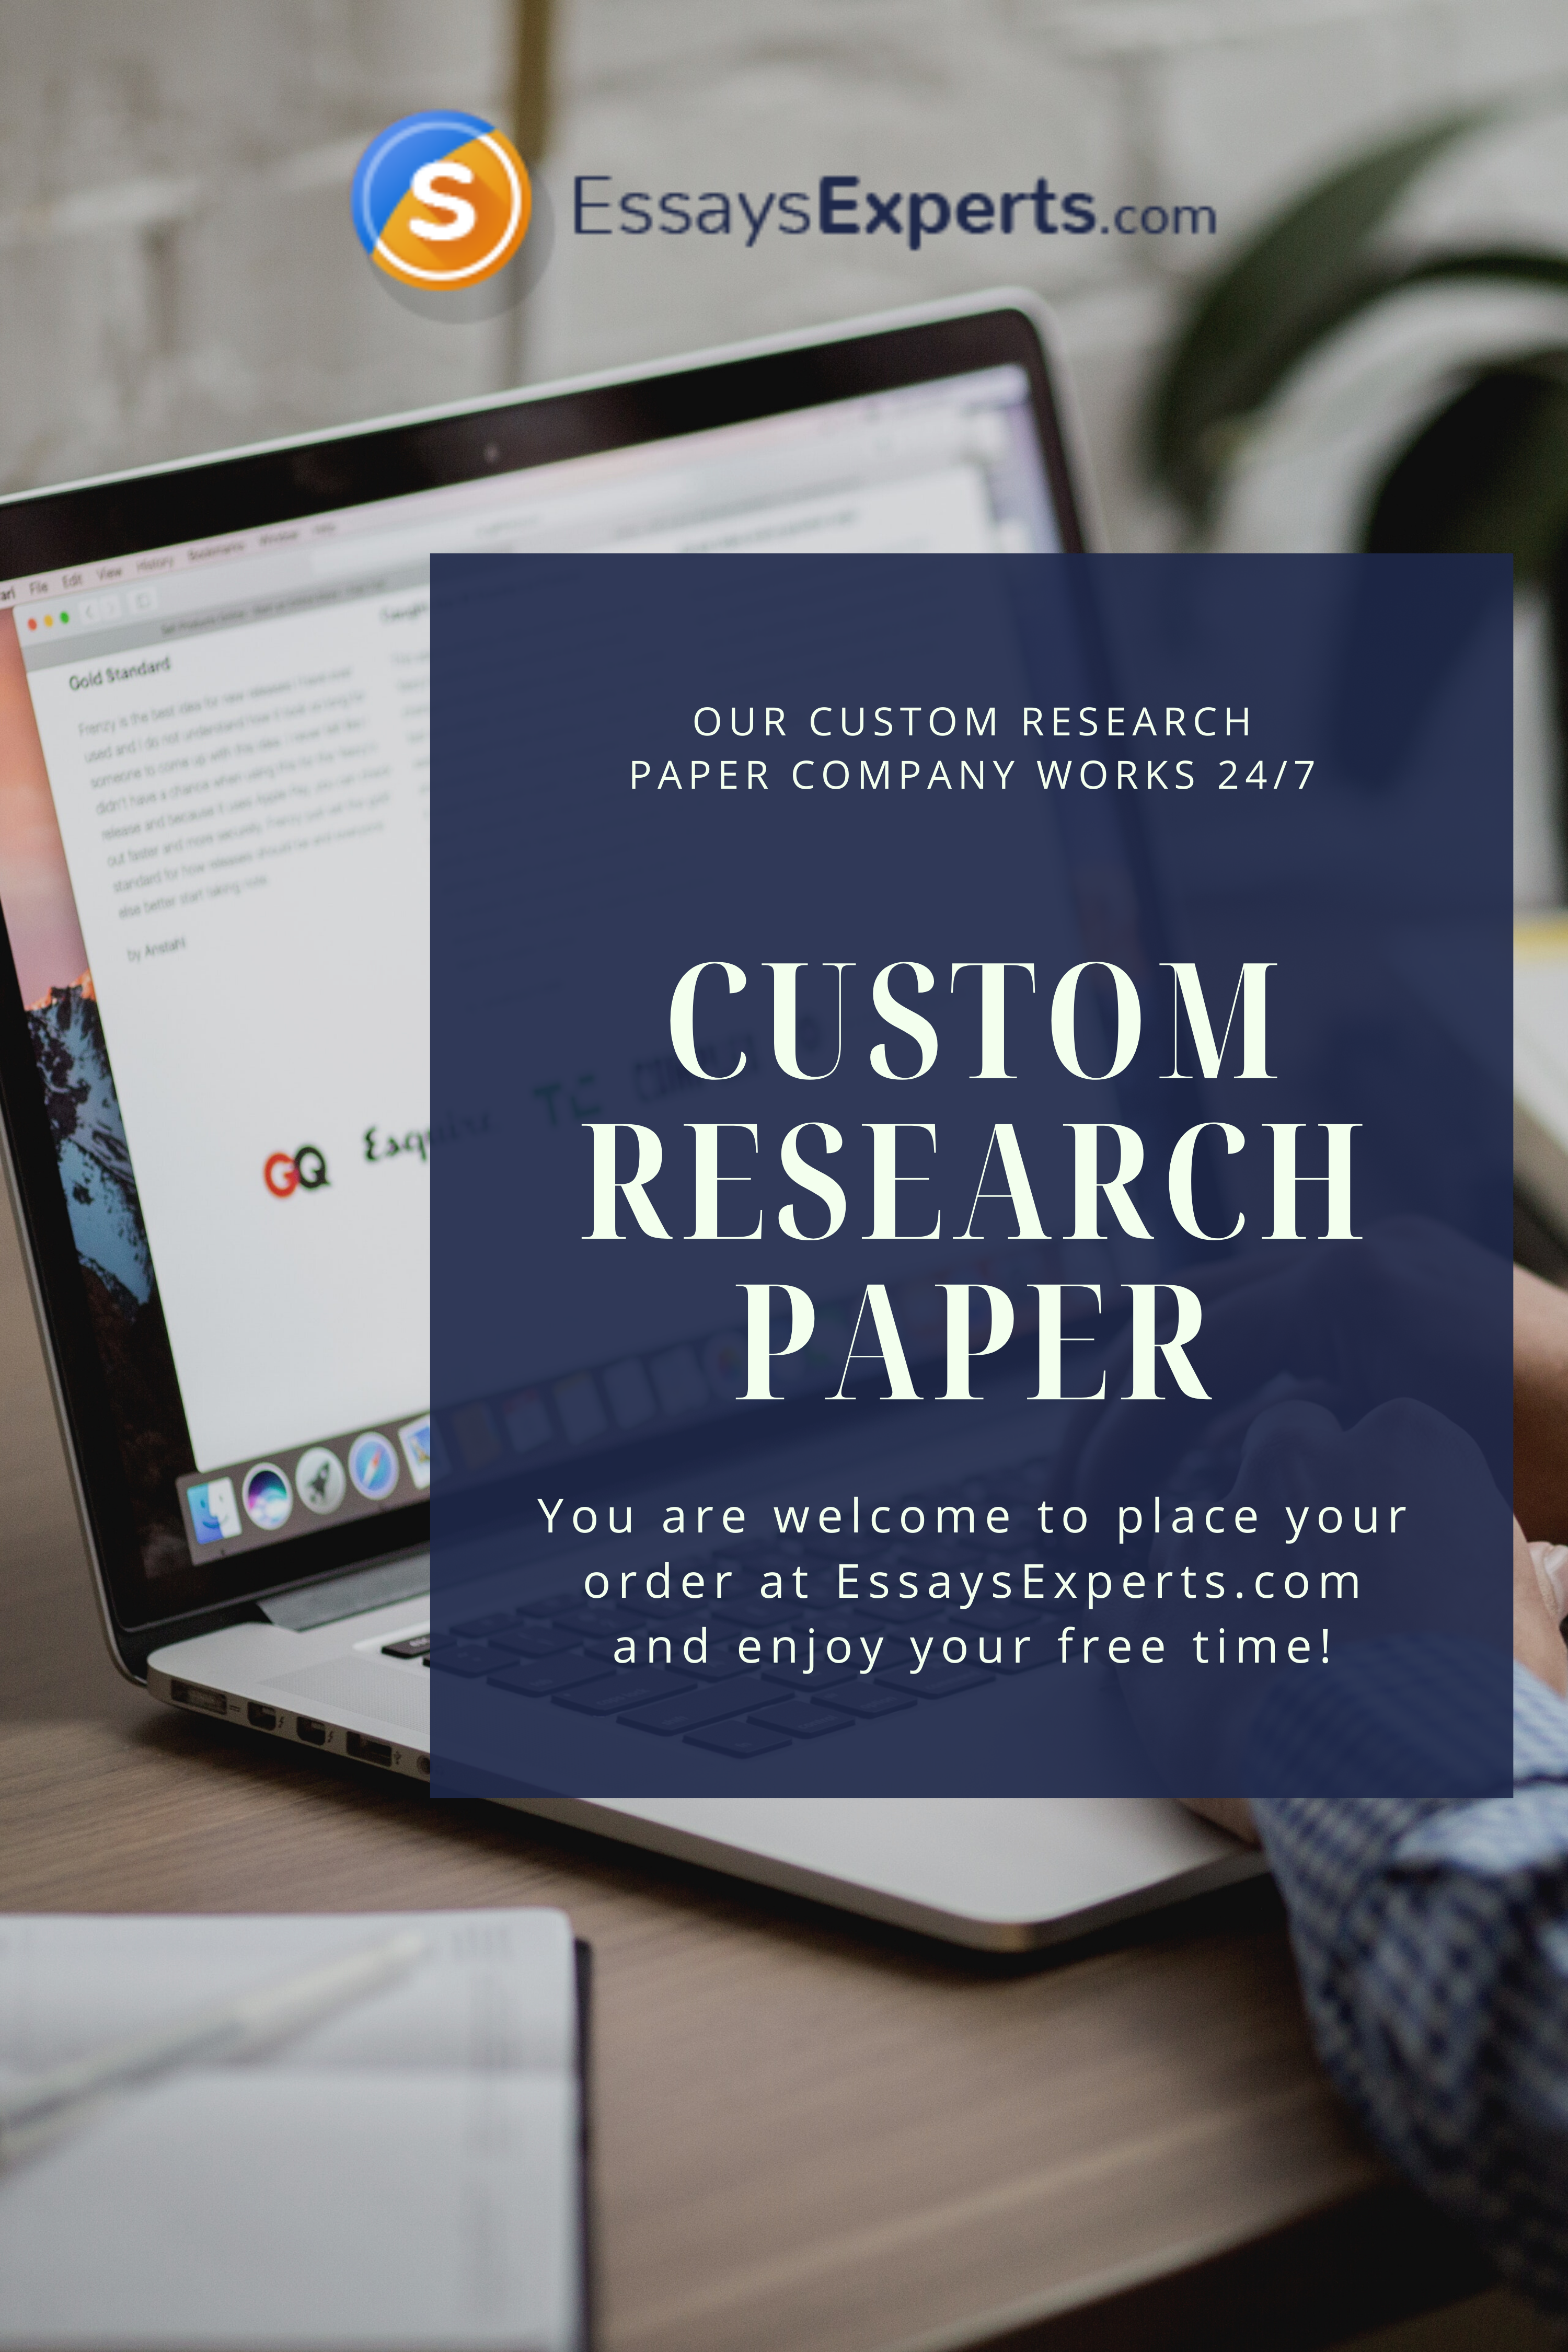 Custom Research Paper In 2020 Research Paper Paper Writing Service Writing Services